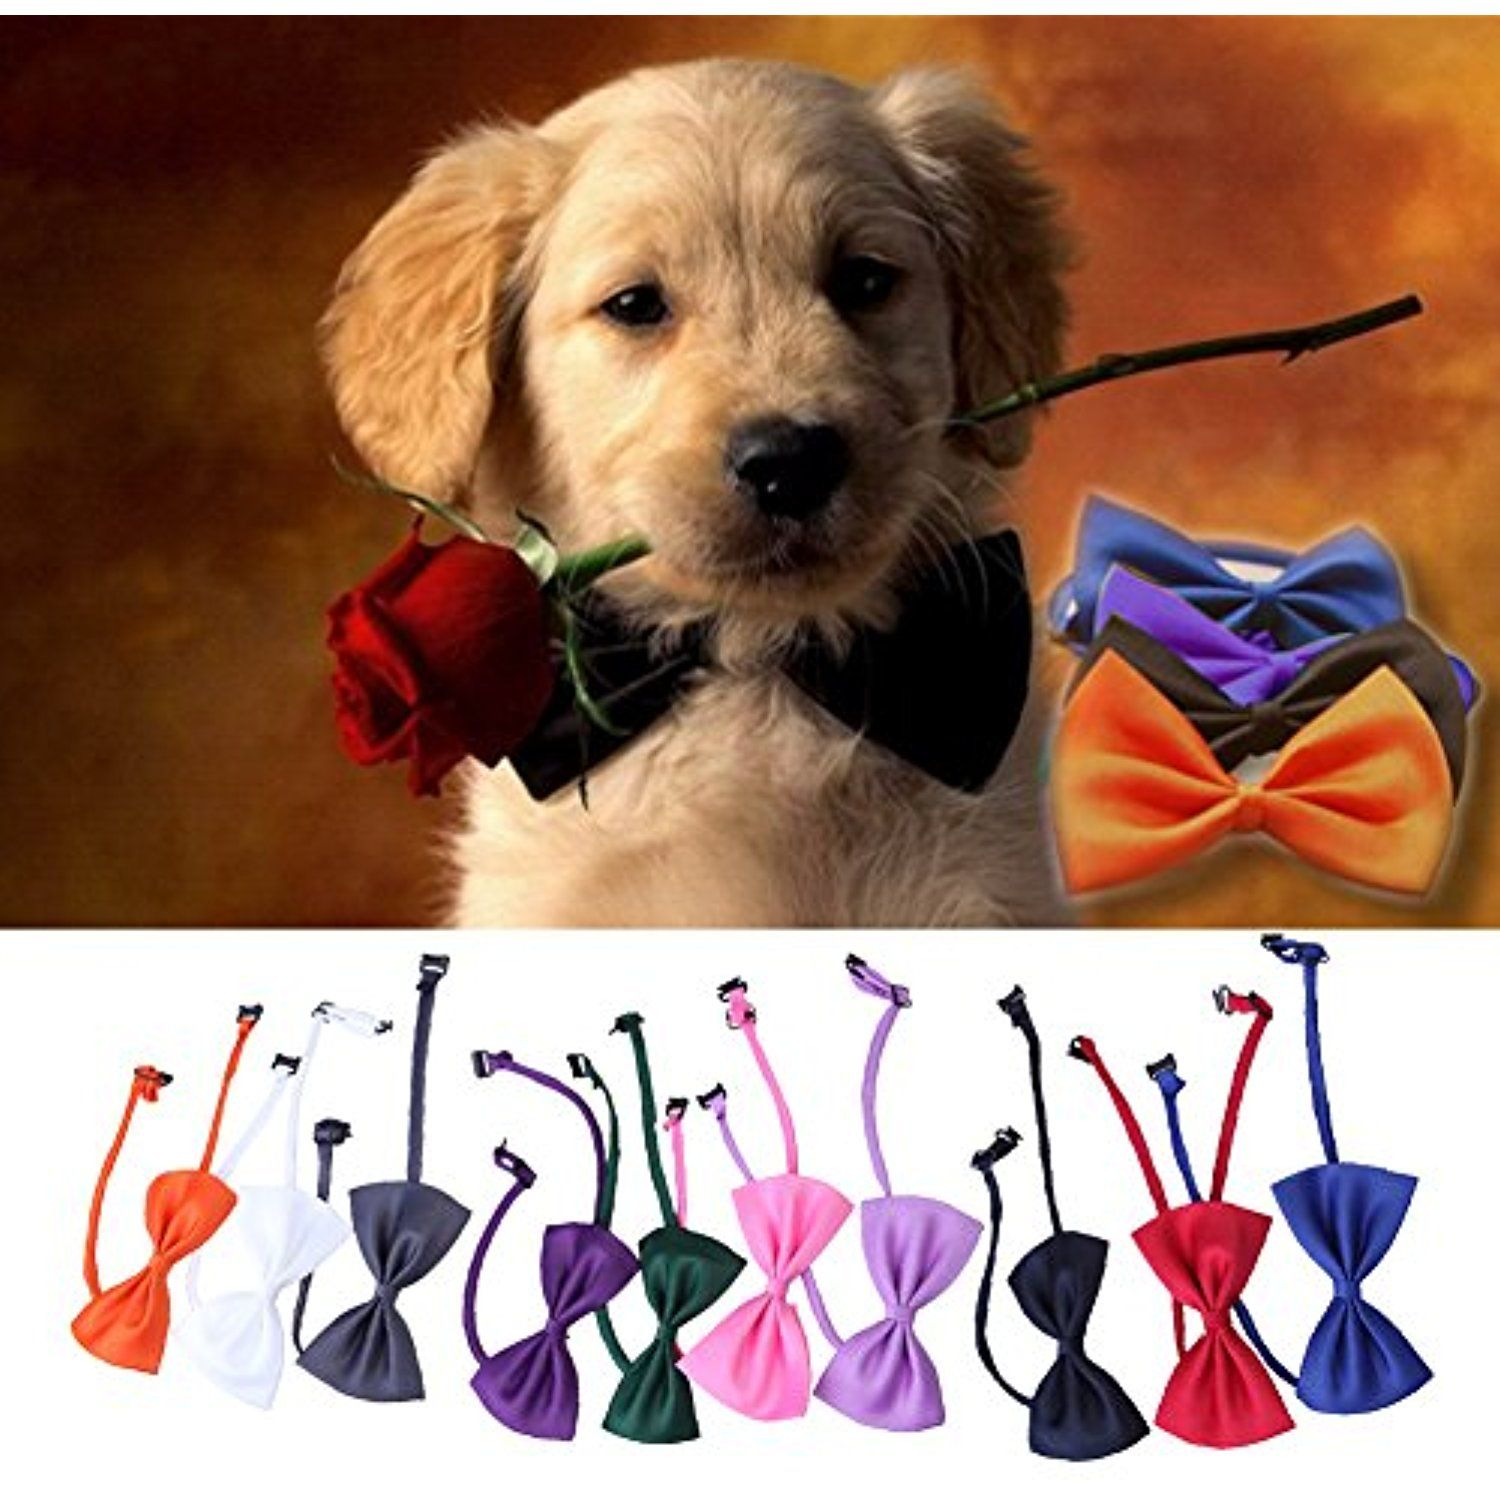 Simple Collar Bow Adorable Dog - 100702230edc68a6abb8a2619cfbf46e  Graphic_308557  .jpg